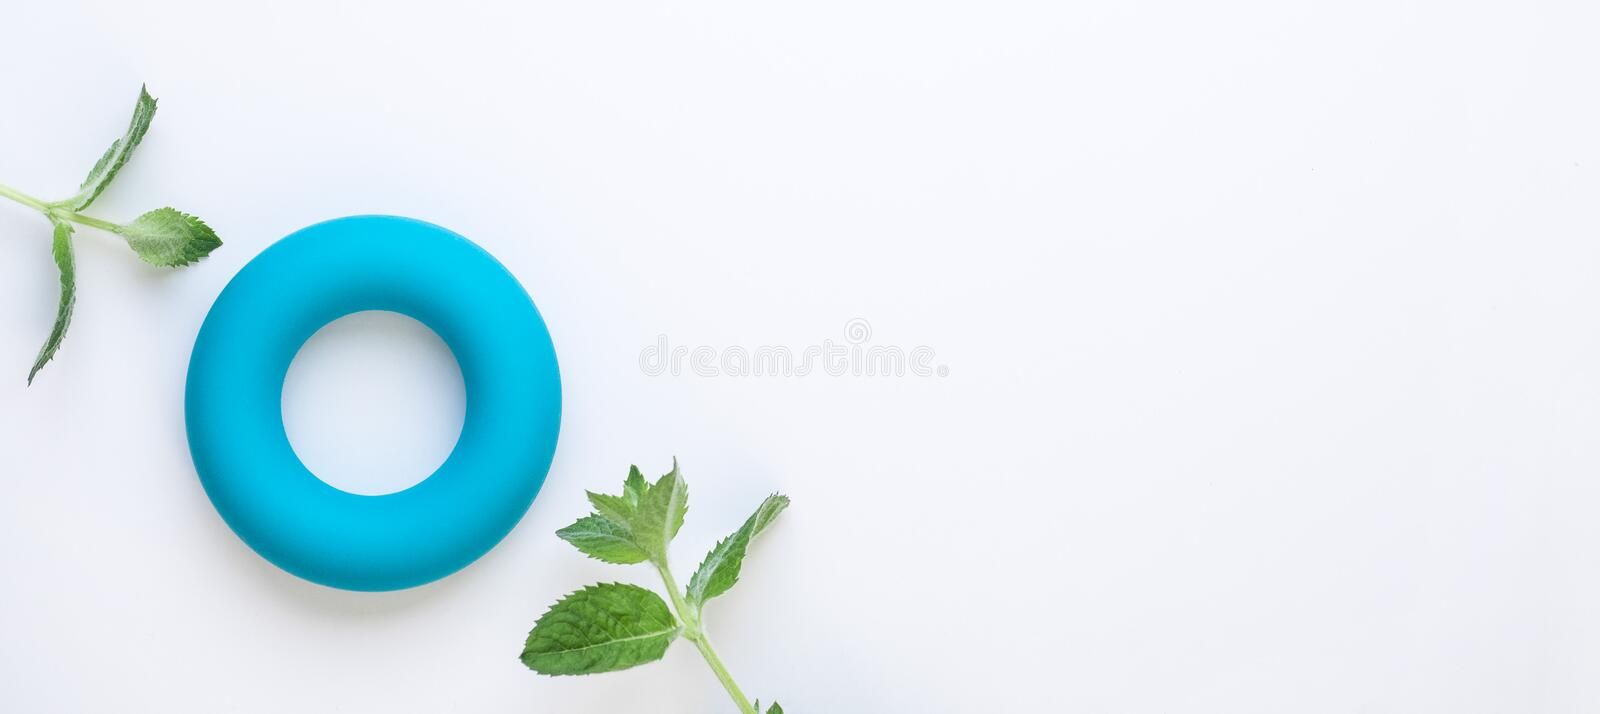 Zero calories and zero waste minimalistic concept background. Blue torus and fresh green mint leaves on white background. Flat lay. Copy space royalty free stock image